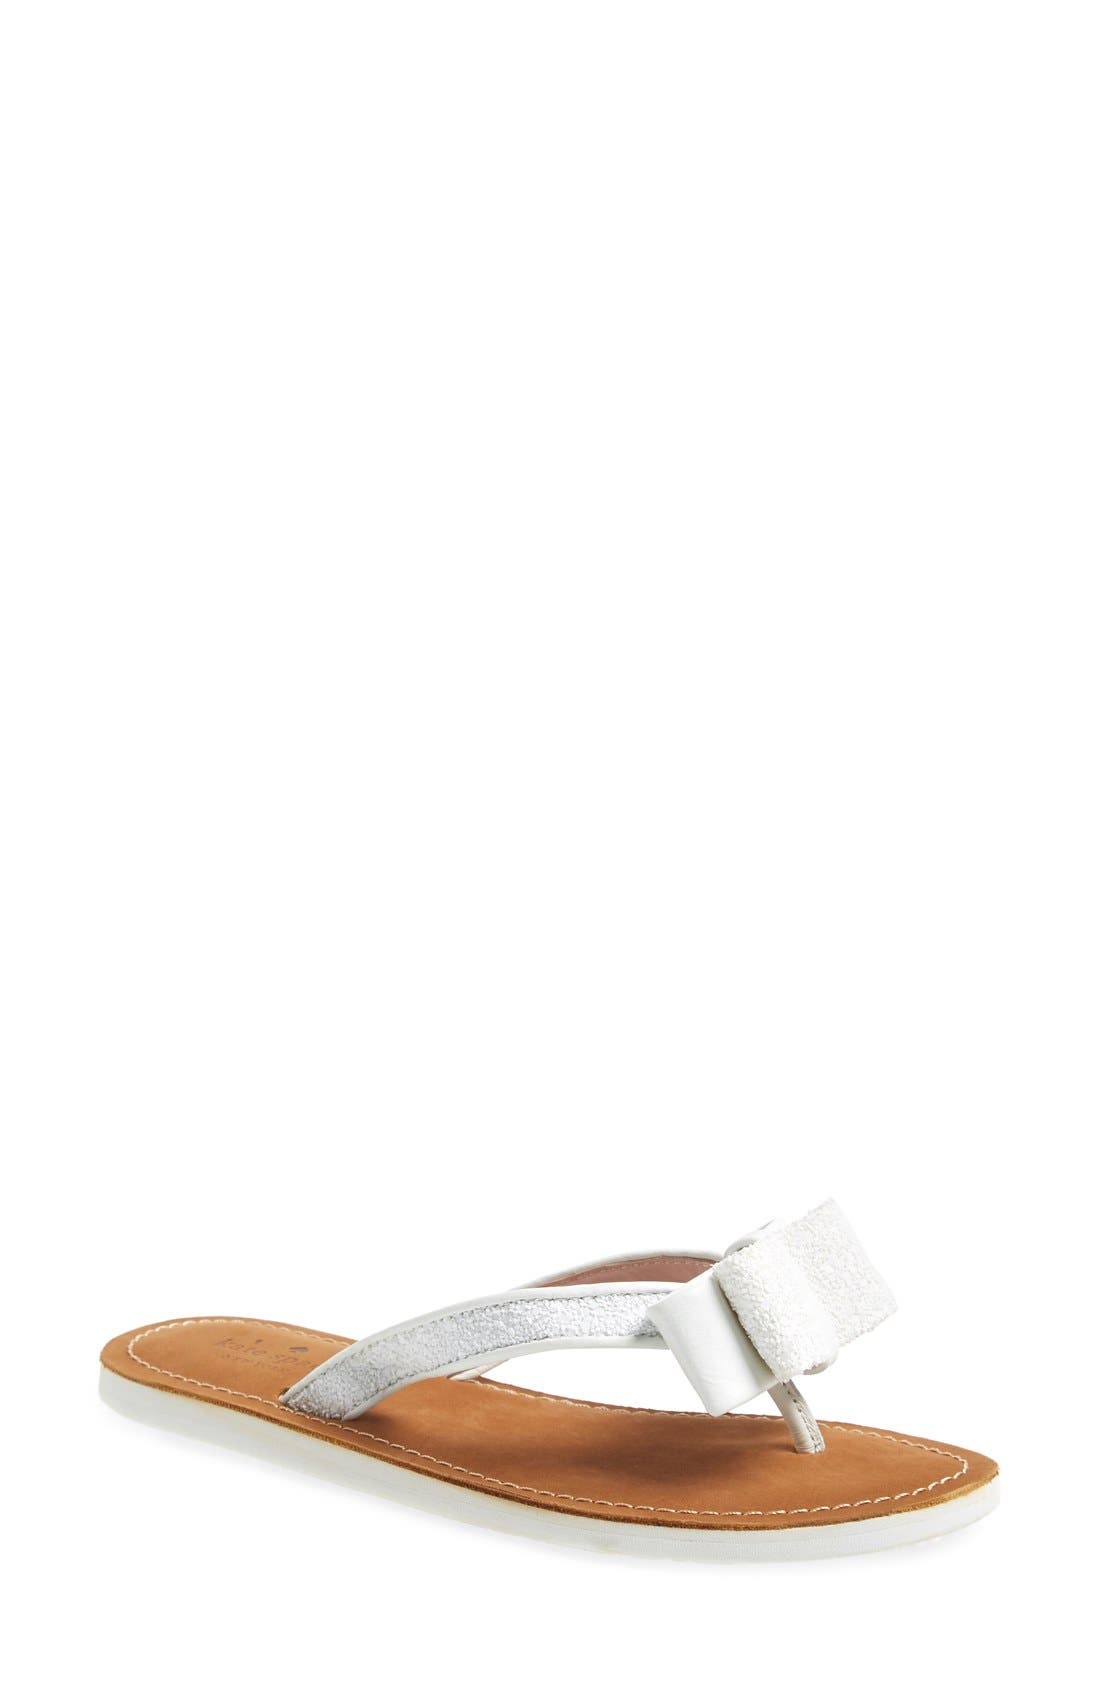 Alternate Image 1 Selected - kate spade new york 'icarda' glitter flip flop (Women)